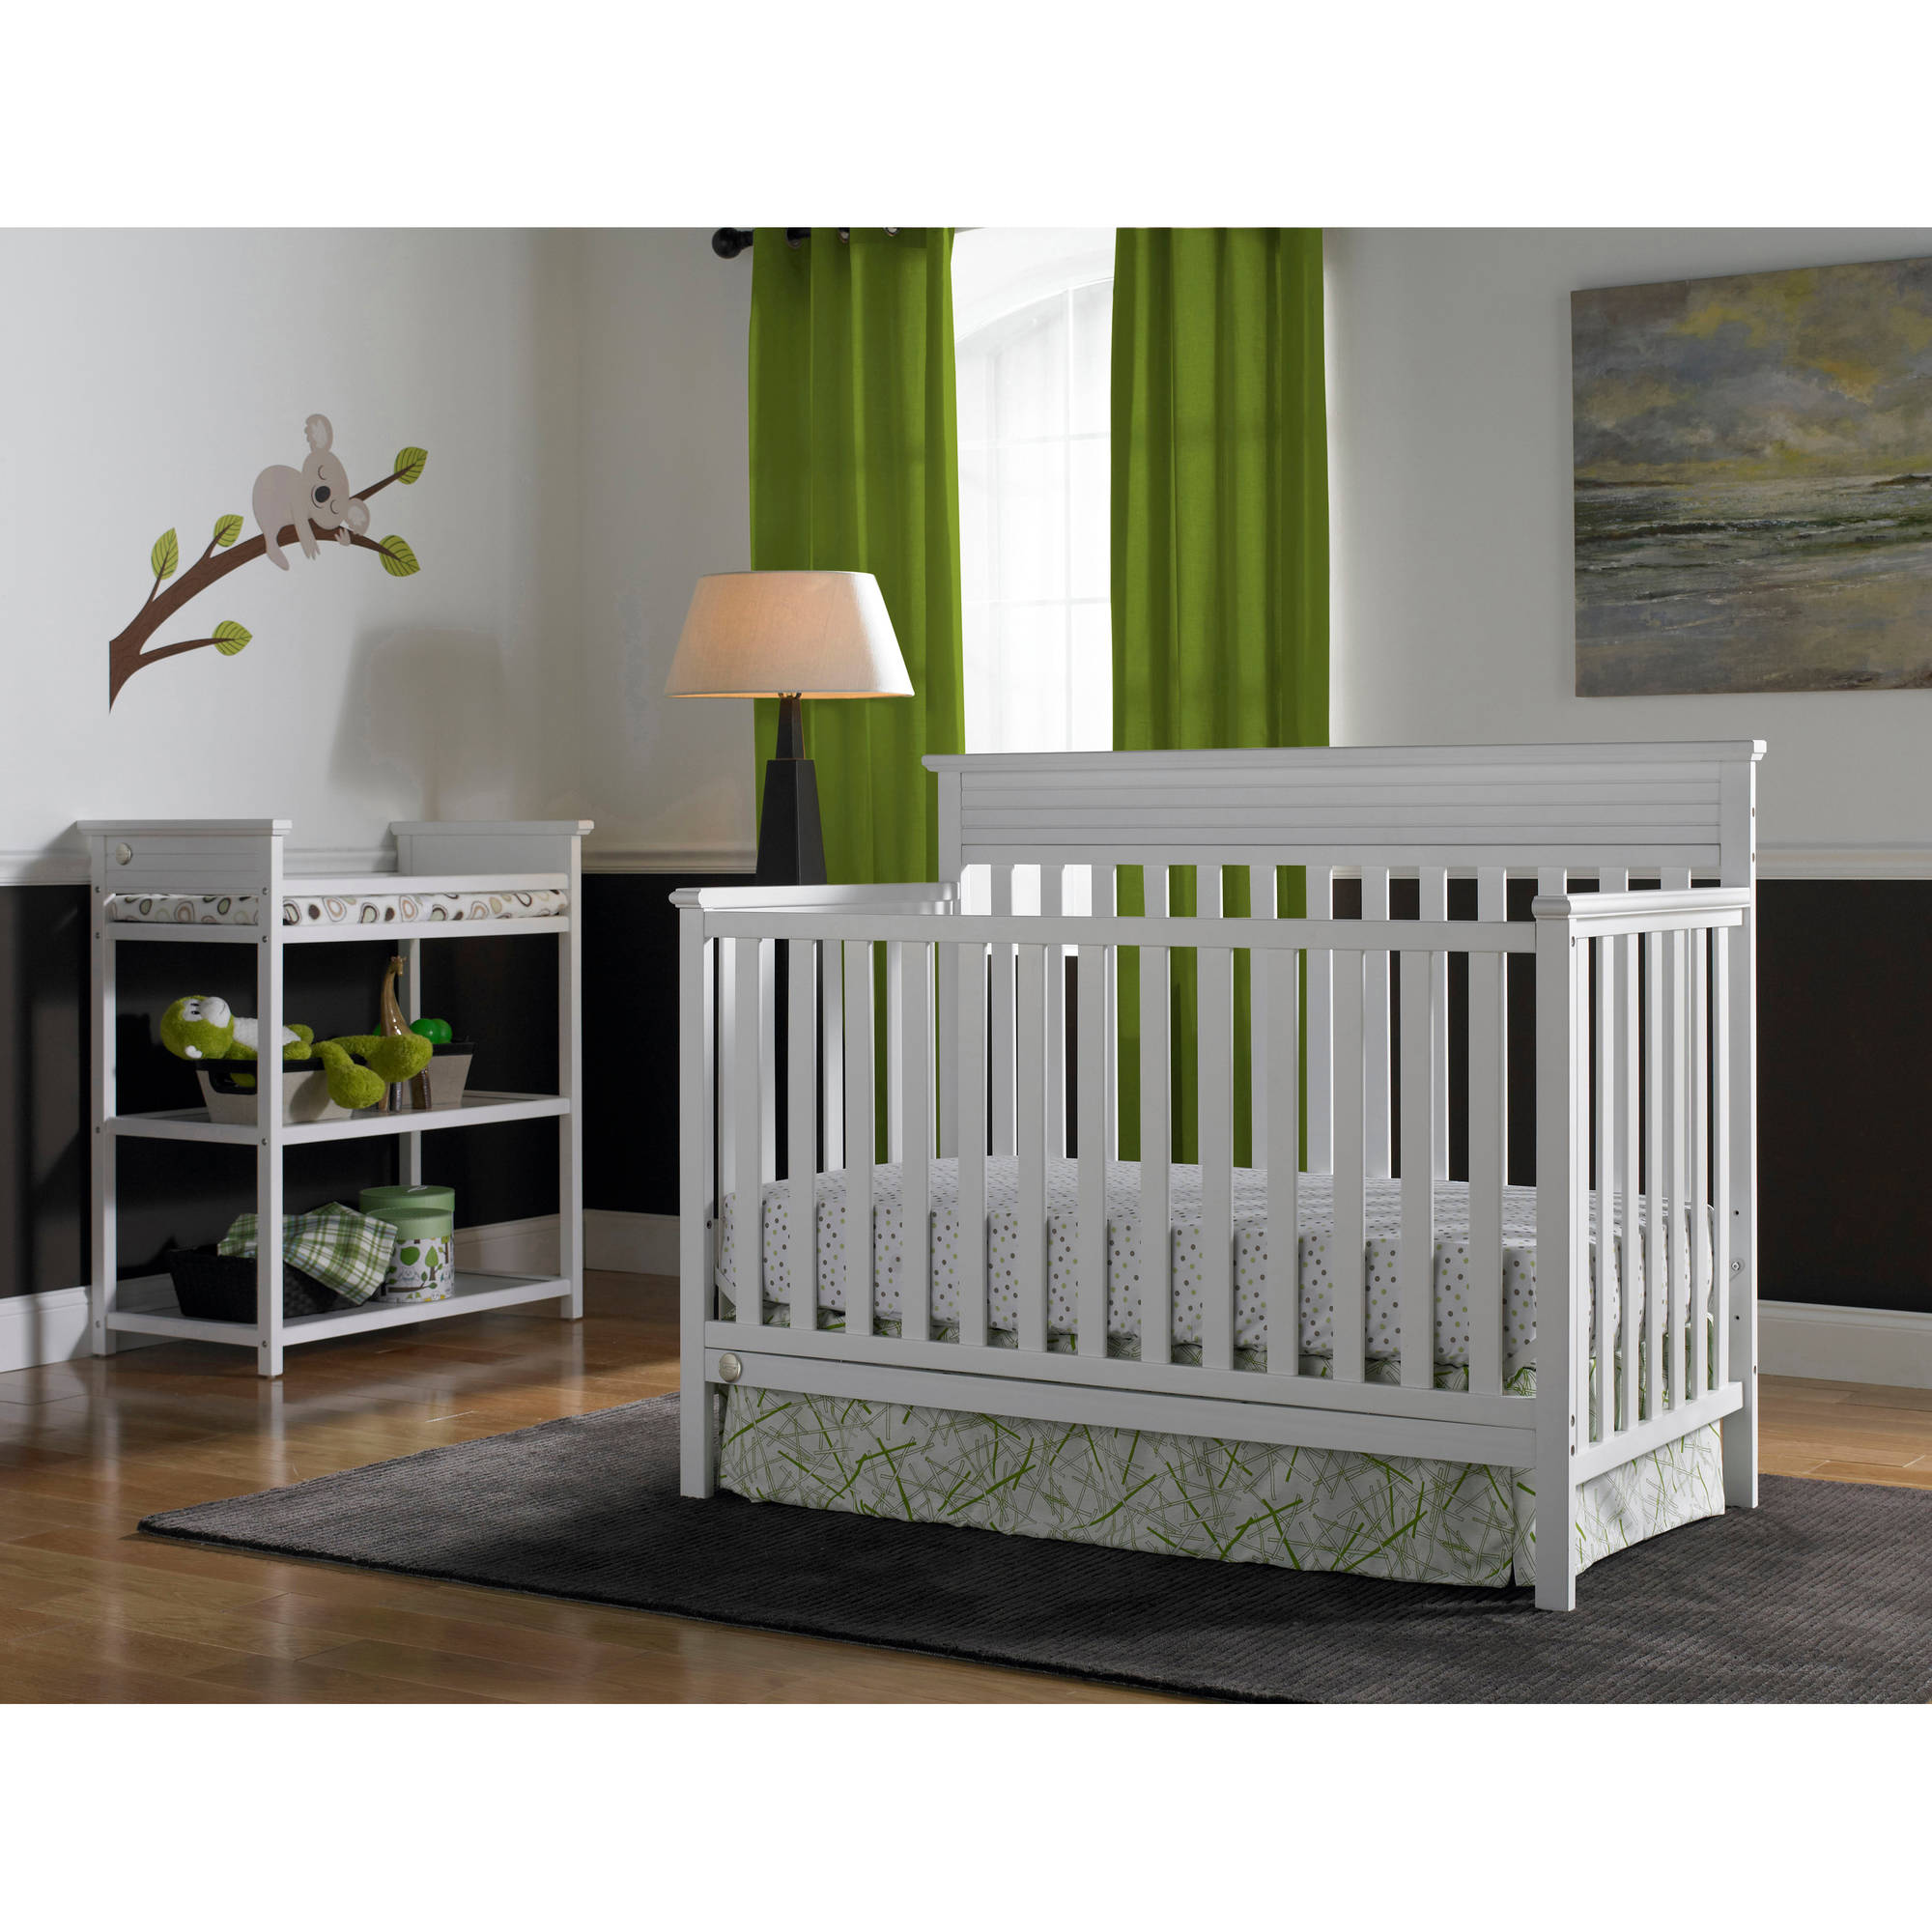 Fisher-Price Newbury 4-in-1 Convertible Crib Collection, Snow White